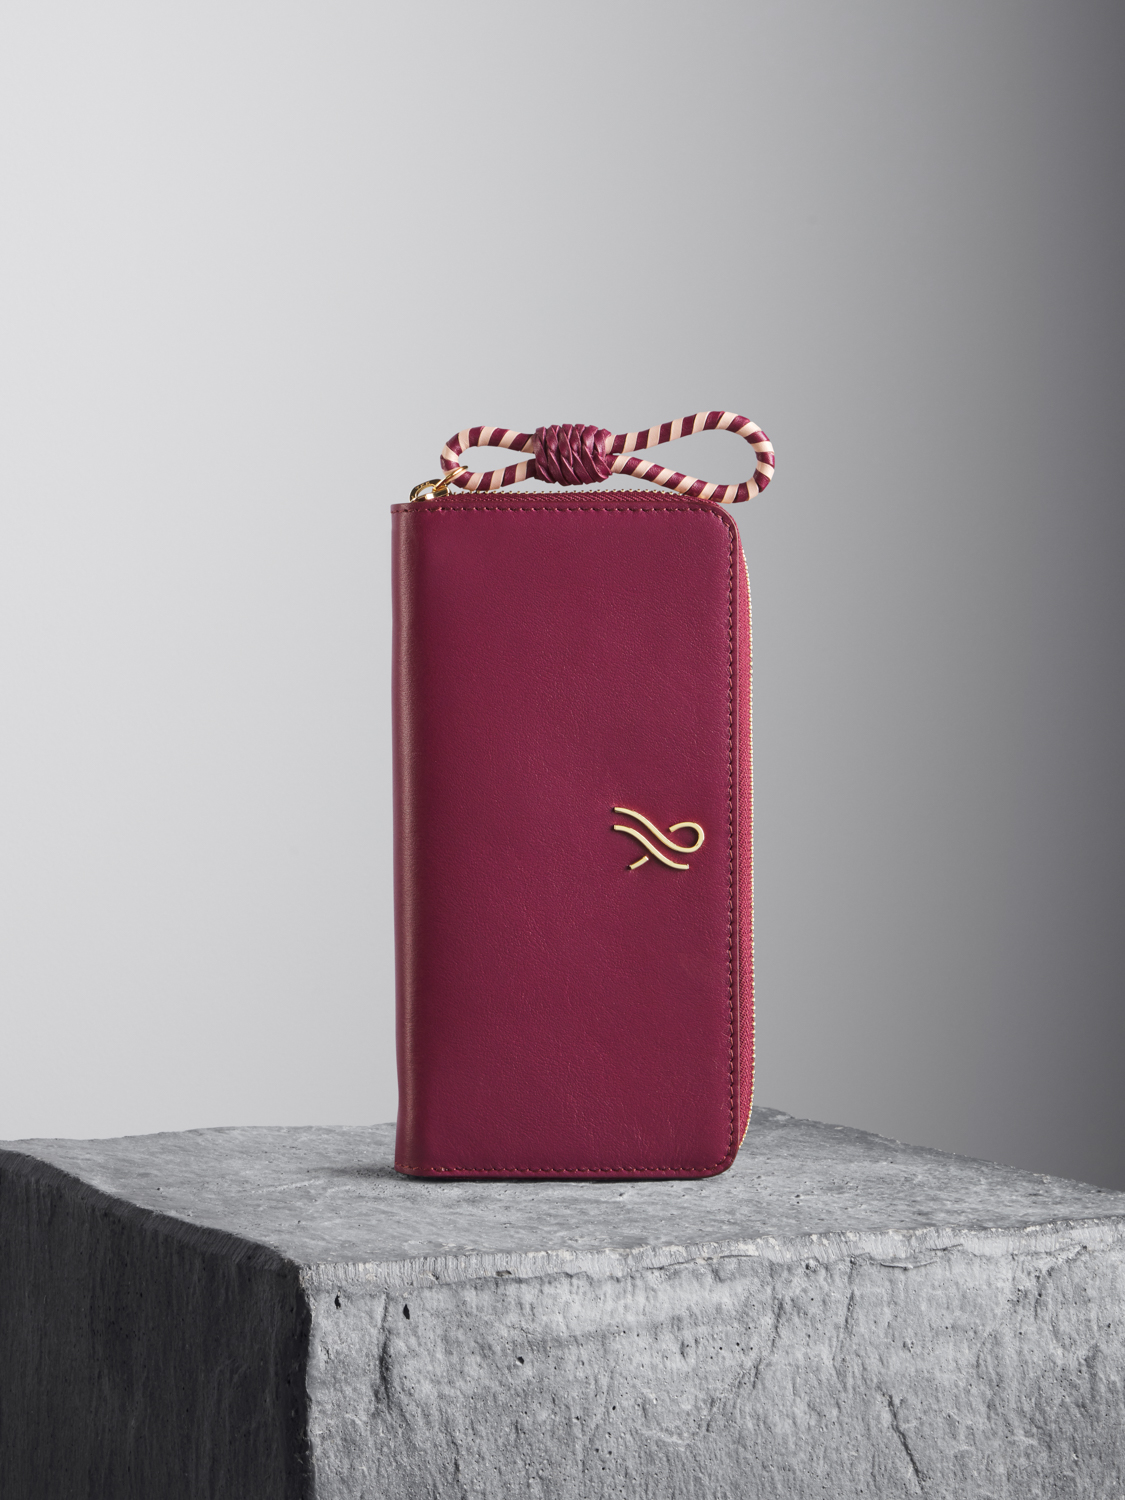 Oxblood Leather Wallet with oxblood and nude woven puller Illicia